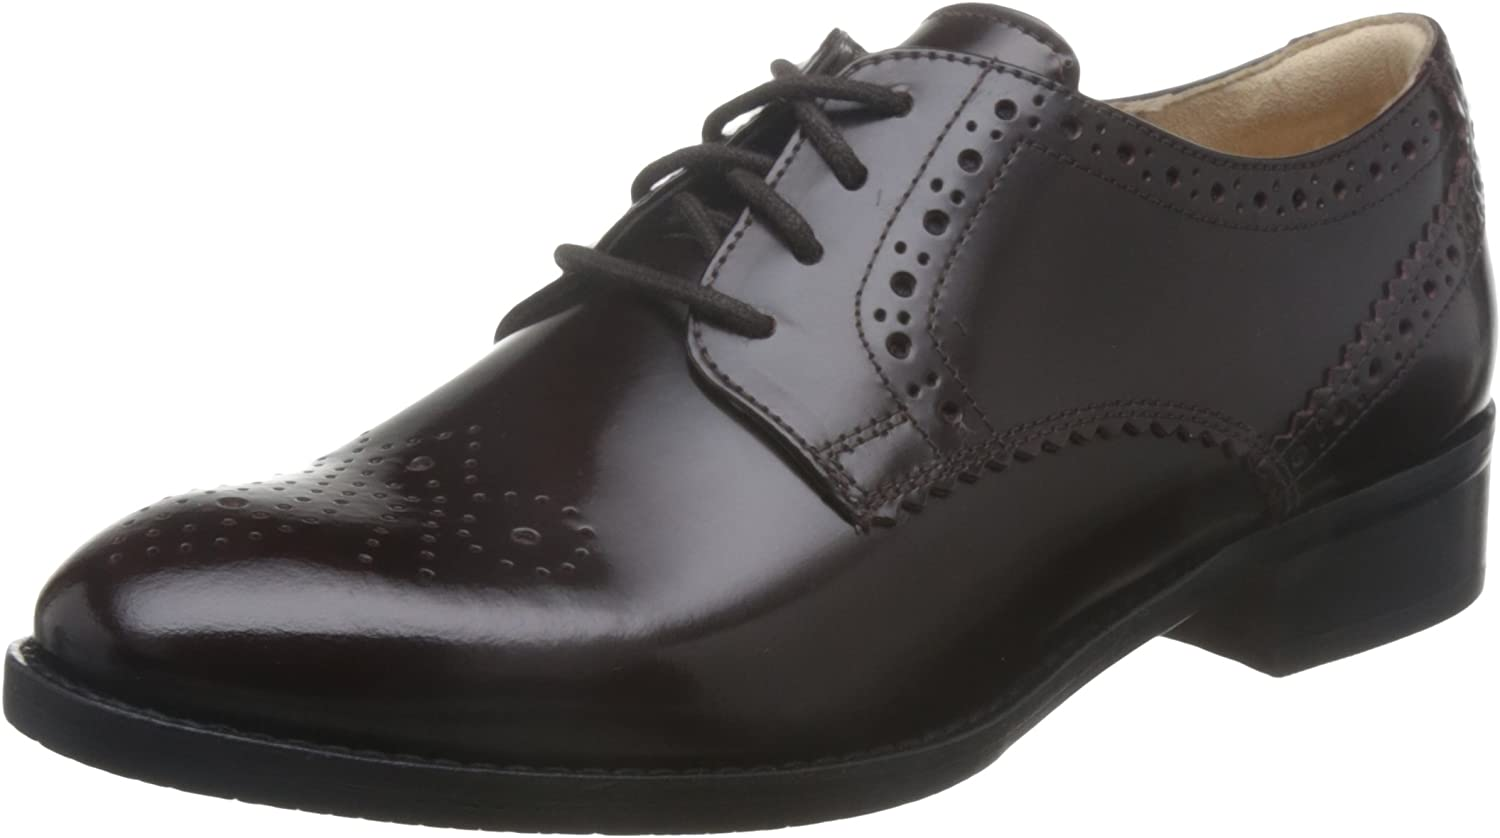 Ladies Clarks Lace Up Leather Brogues *Netley Rose*